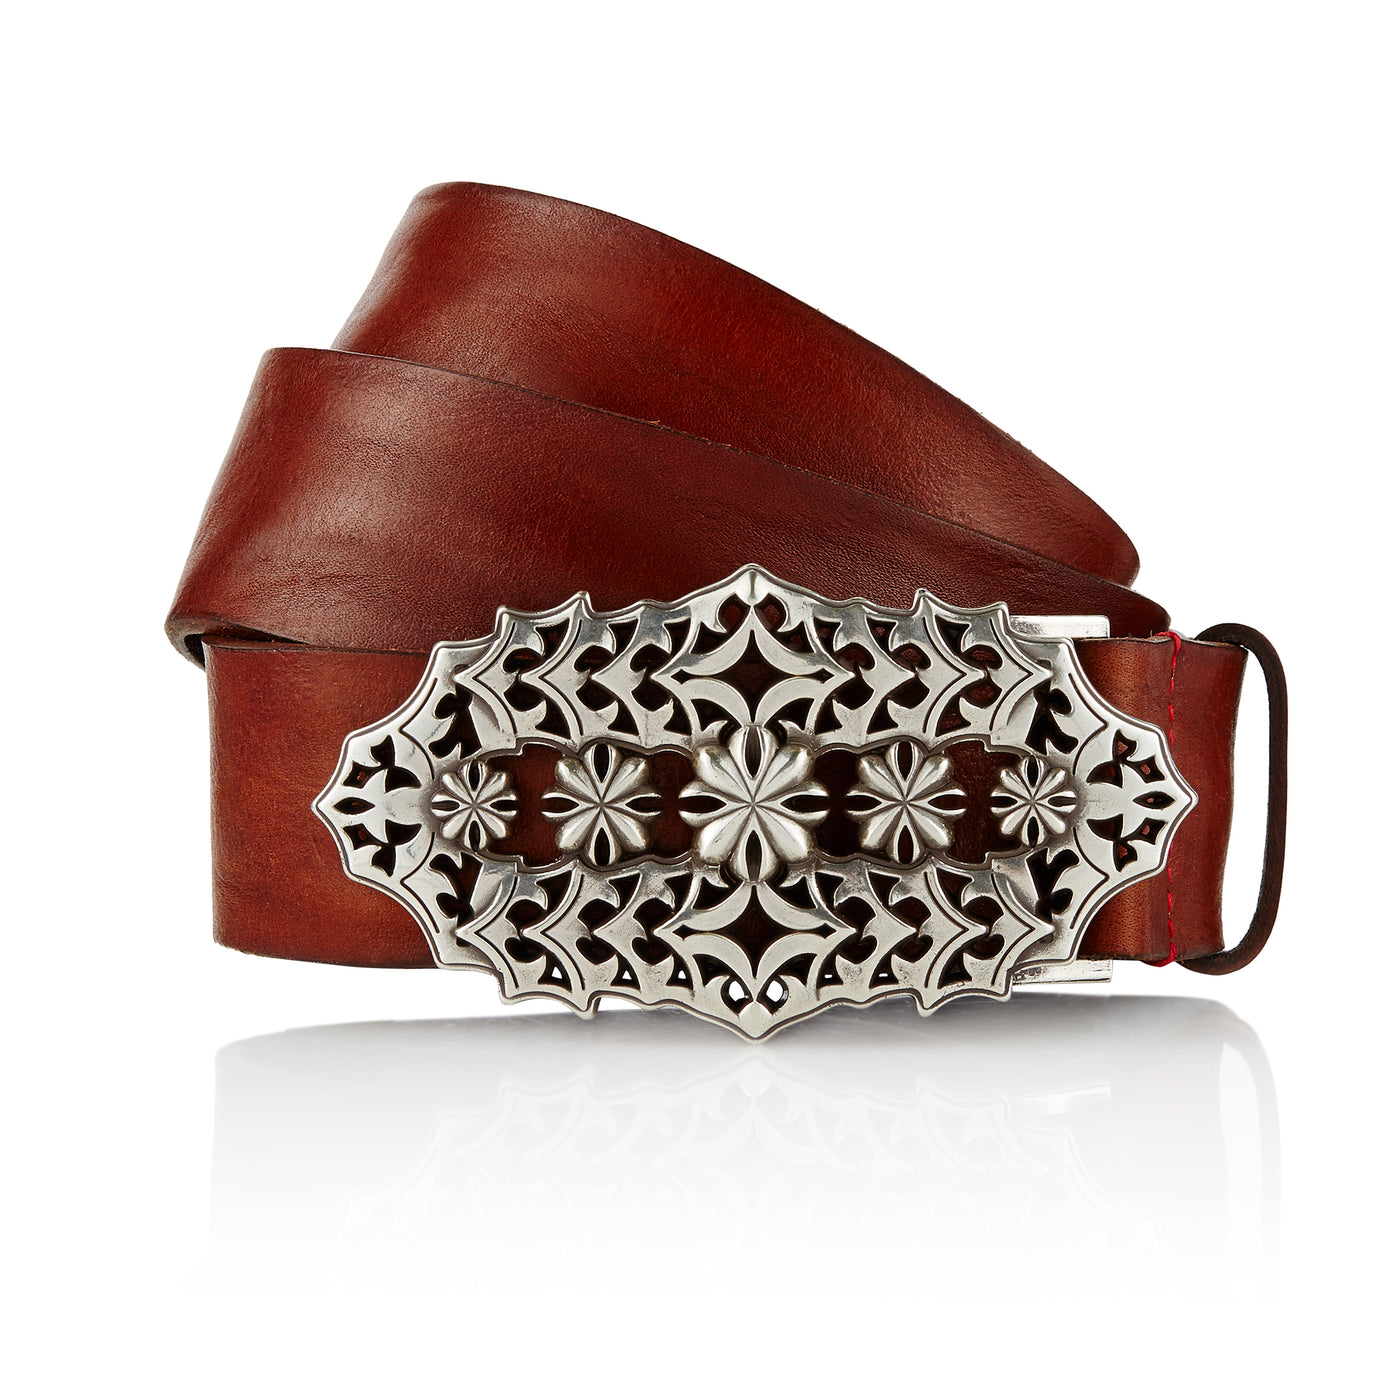 Vindhar - Handcrafted Italian Belt / Brown